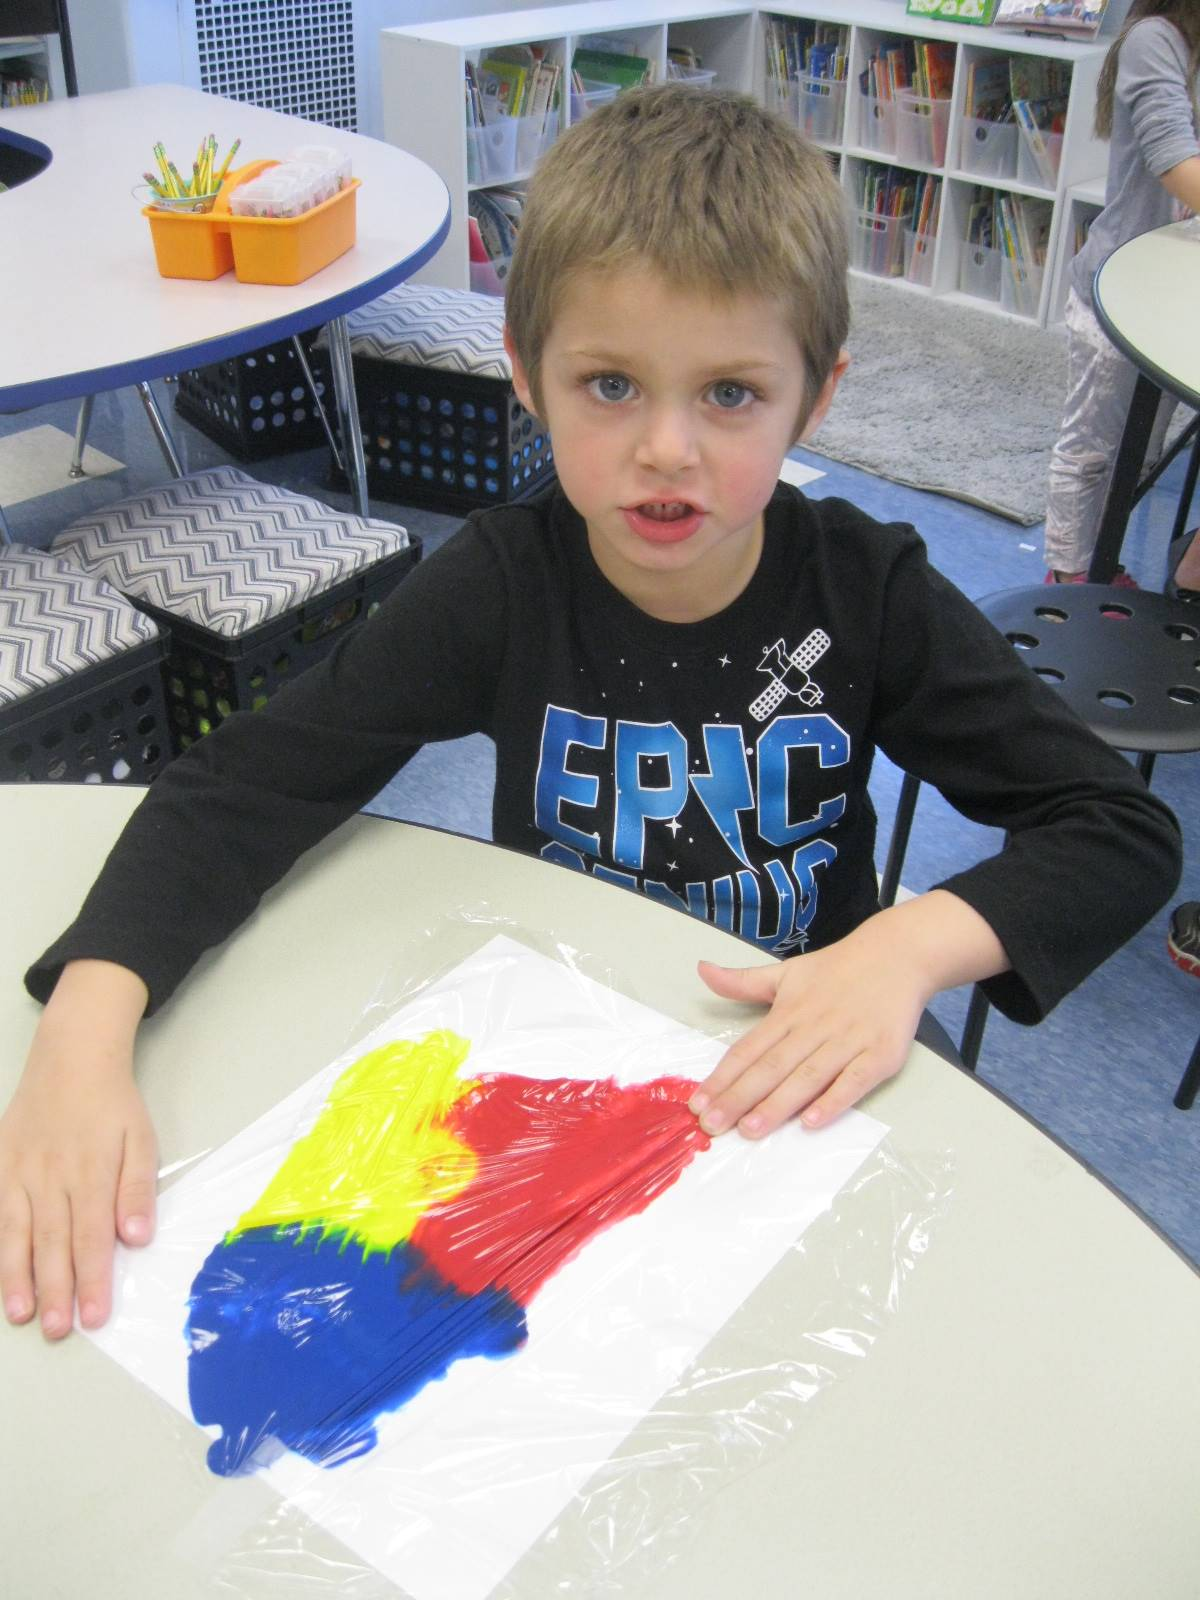 A student shows his art.